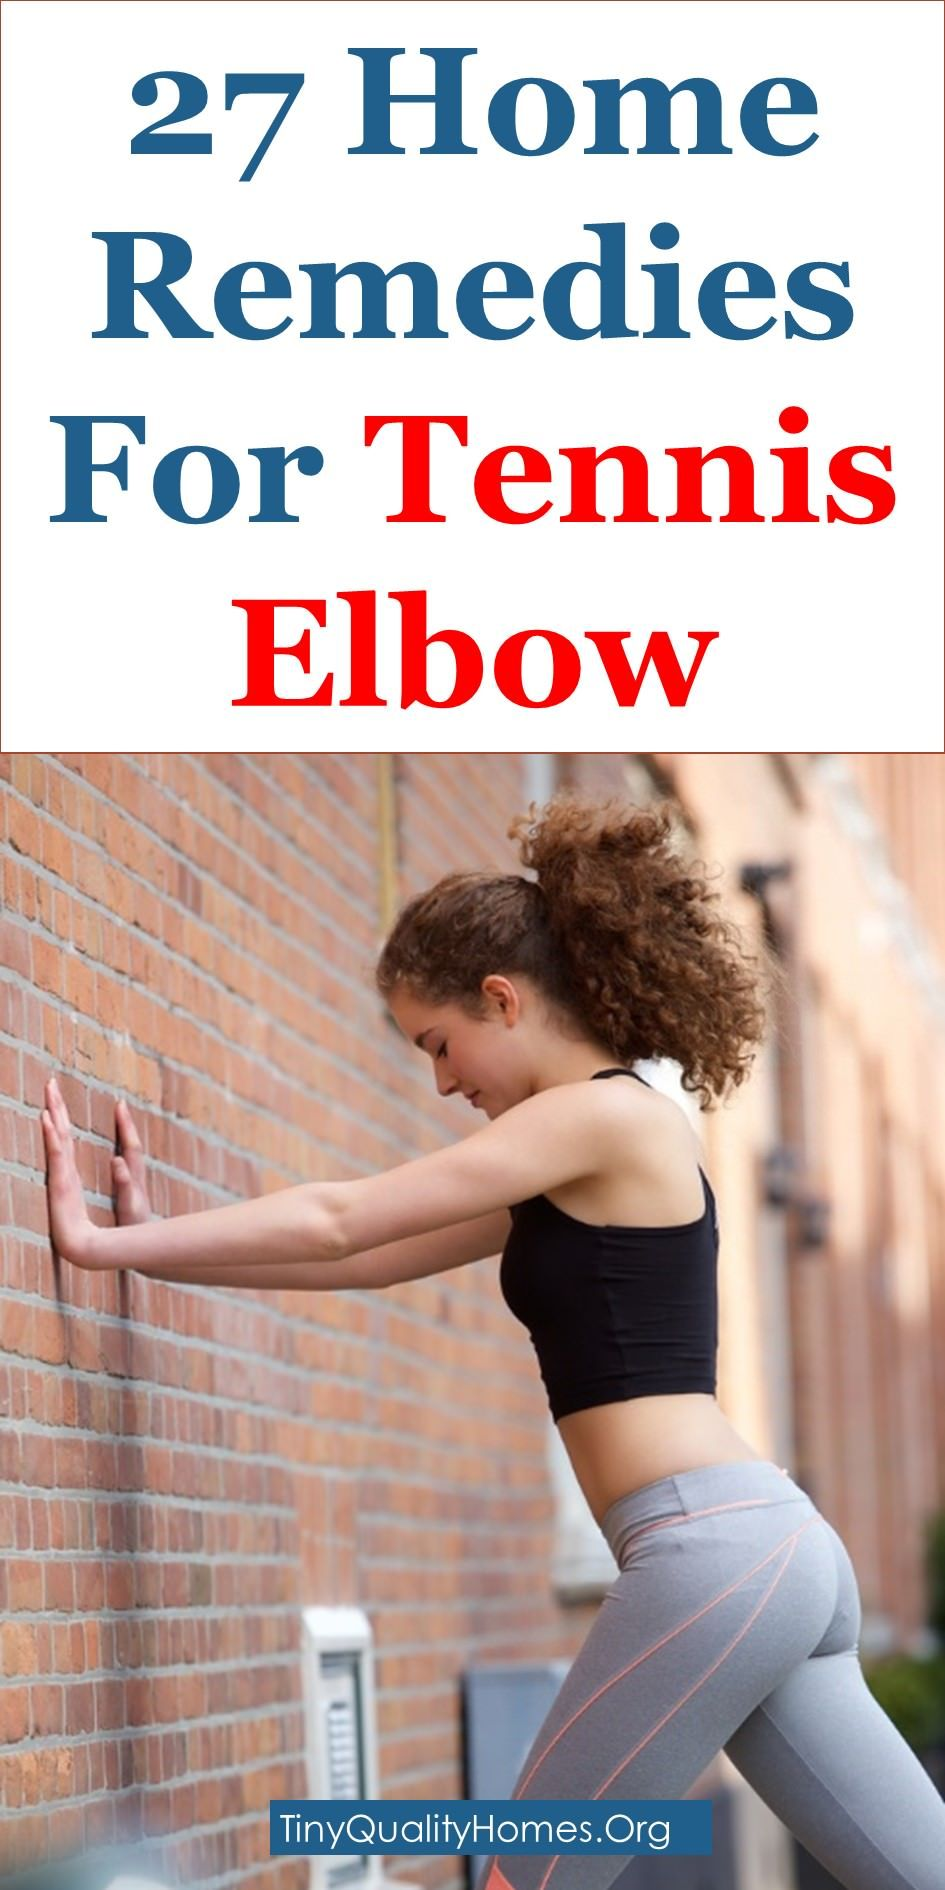 27 Effective Home Remedies For Tennis Elbow This Article Discusses Ideas On The Following Tennis Tennis Elbow Exercises Elbow Exercises Tennis Elbow Symptoms